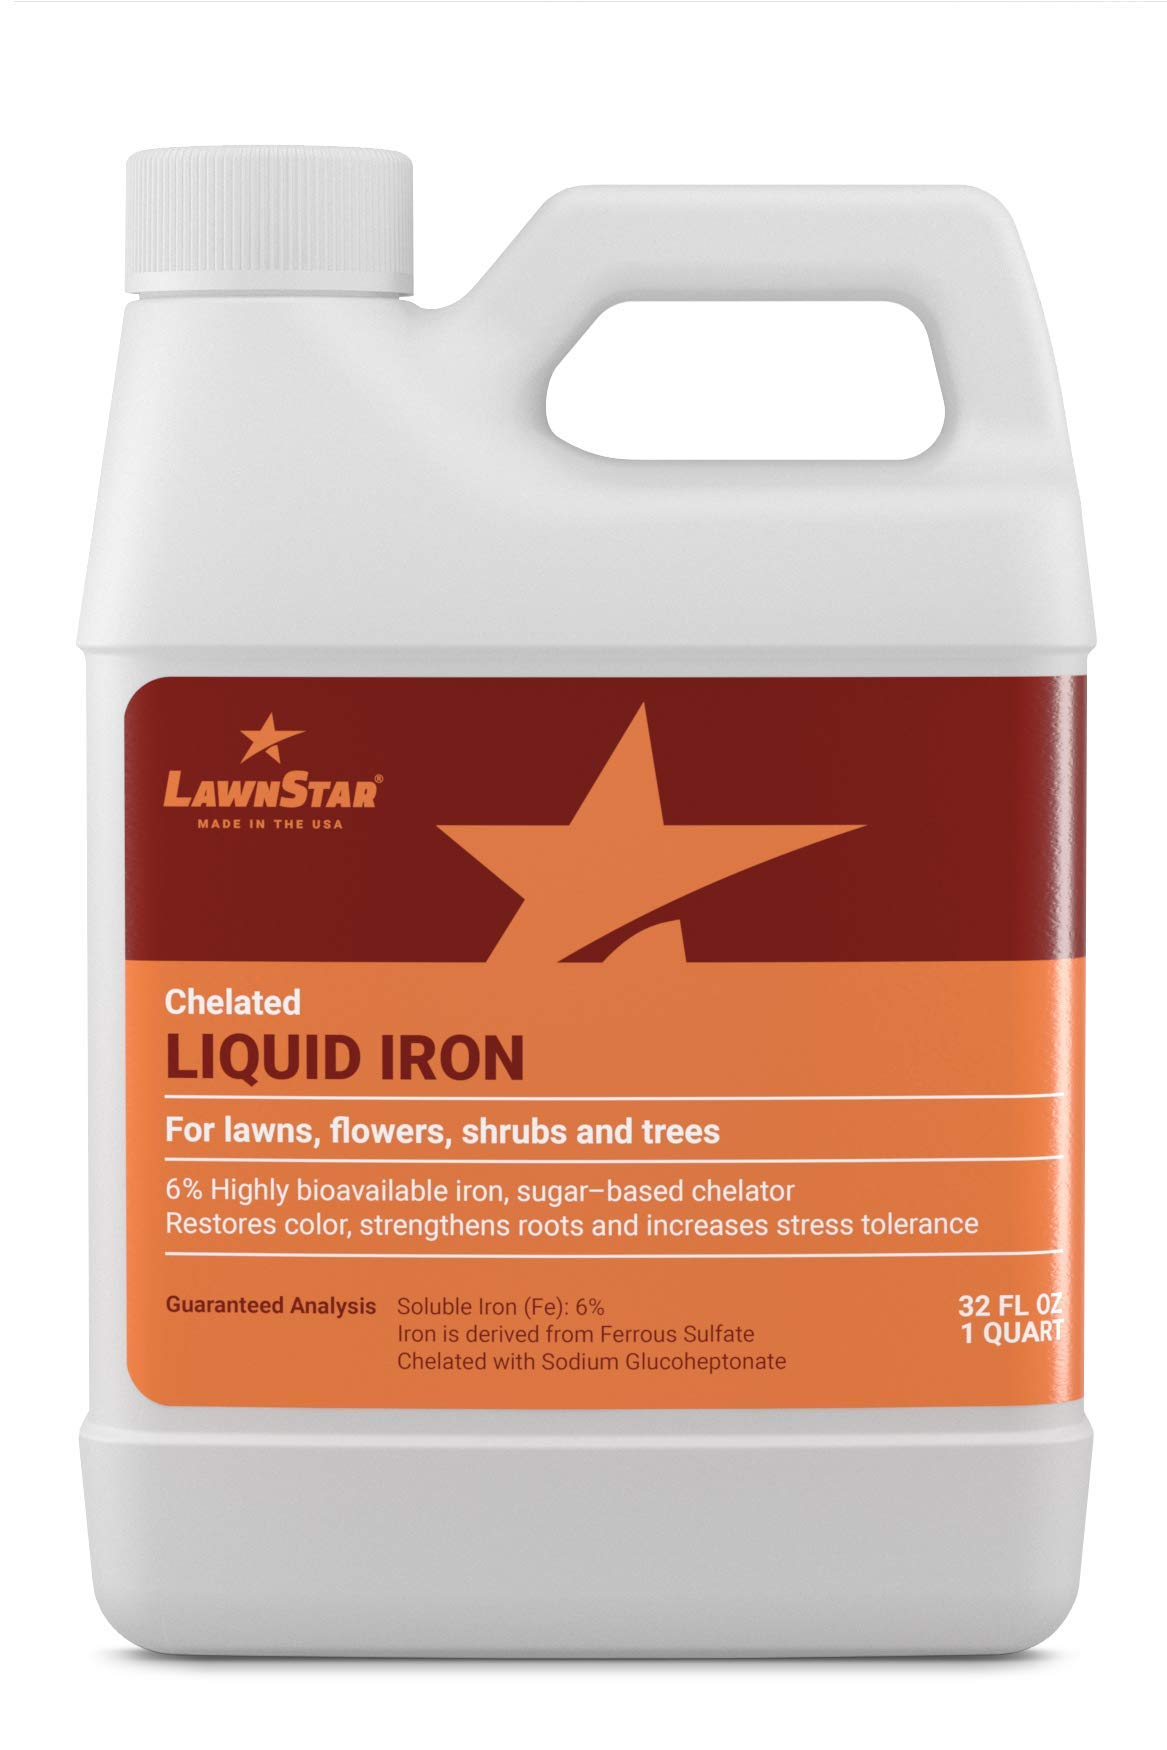 LawnStar Chelated Liquid Iron (32 OZ) for Plants - Multi-Purpose, Suitable for Lawn, Flowers, Shrubs, Trees - Treats Iron Deficiency, Root Damage & Color Distortion - EDTA-Free, American Made